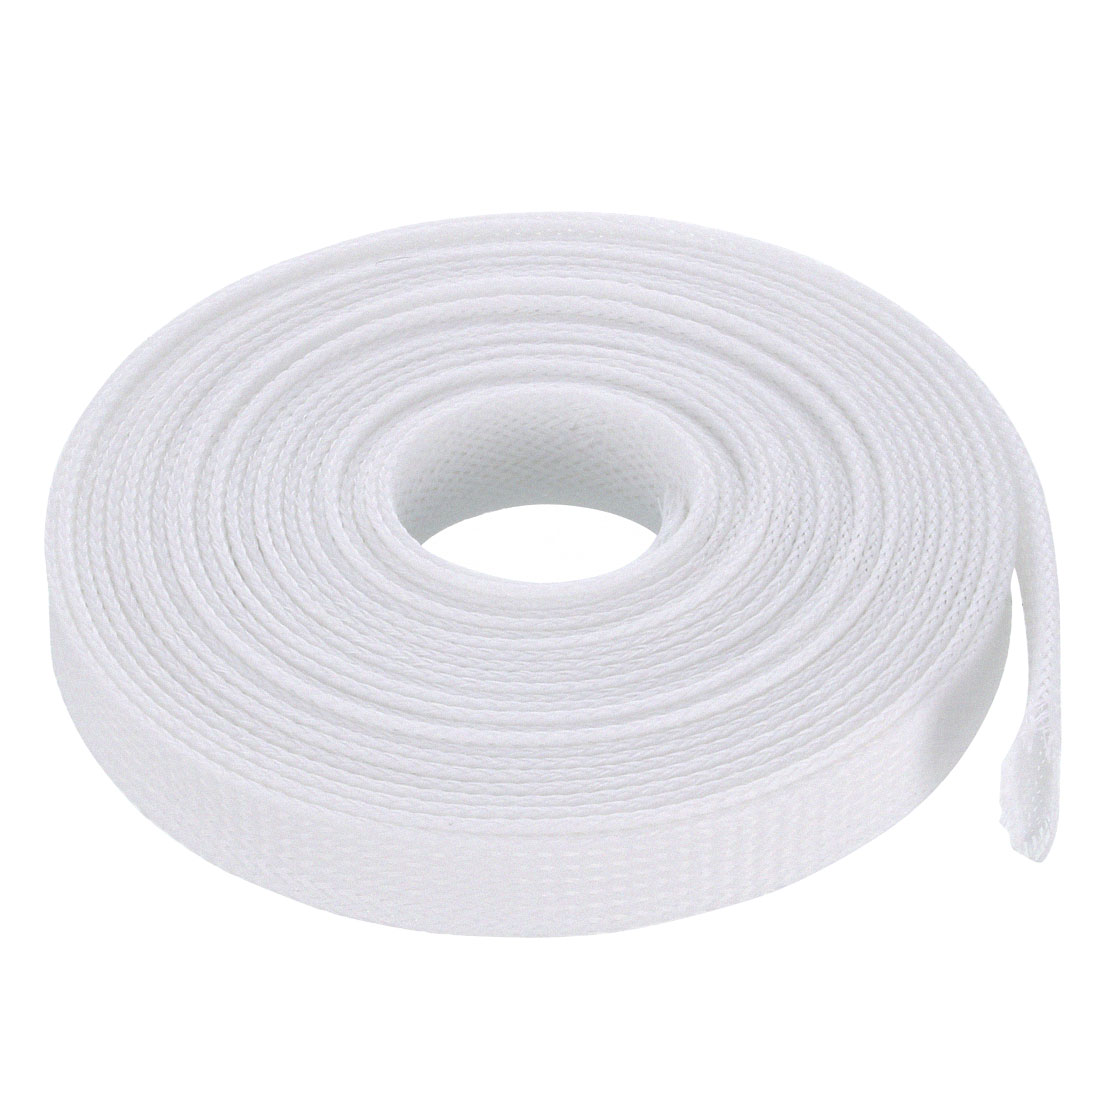 12mm Flat Dia Tight Braided PET Expandable Sleeving Cable Wrap Sheath White 5M